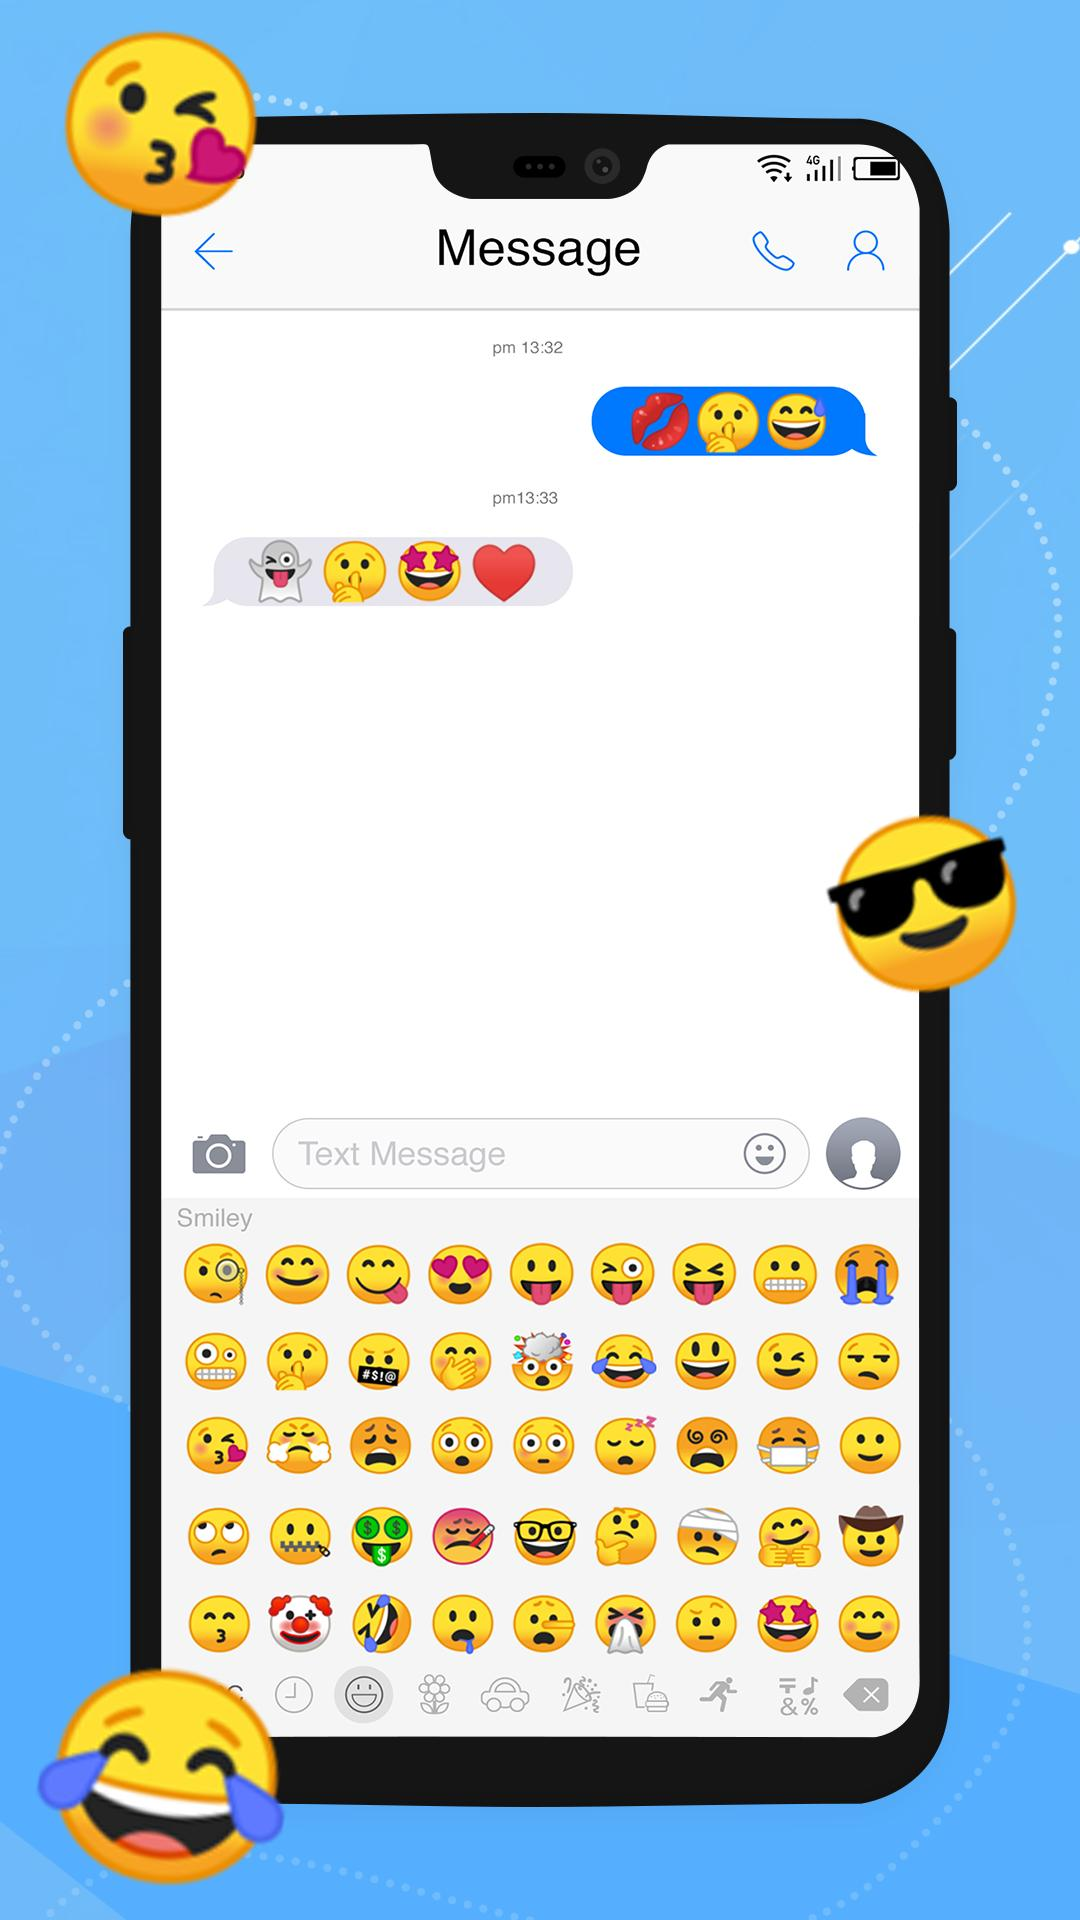 One Messenger 7 - SMS, MMS, Emoji for Android - APK Download